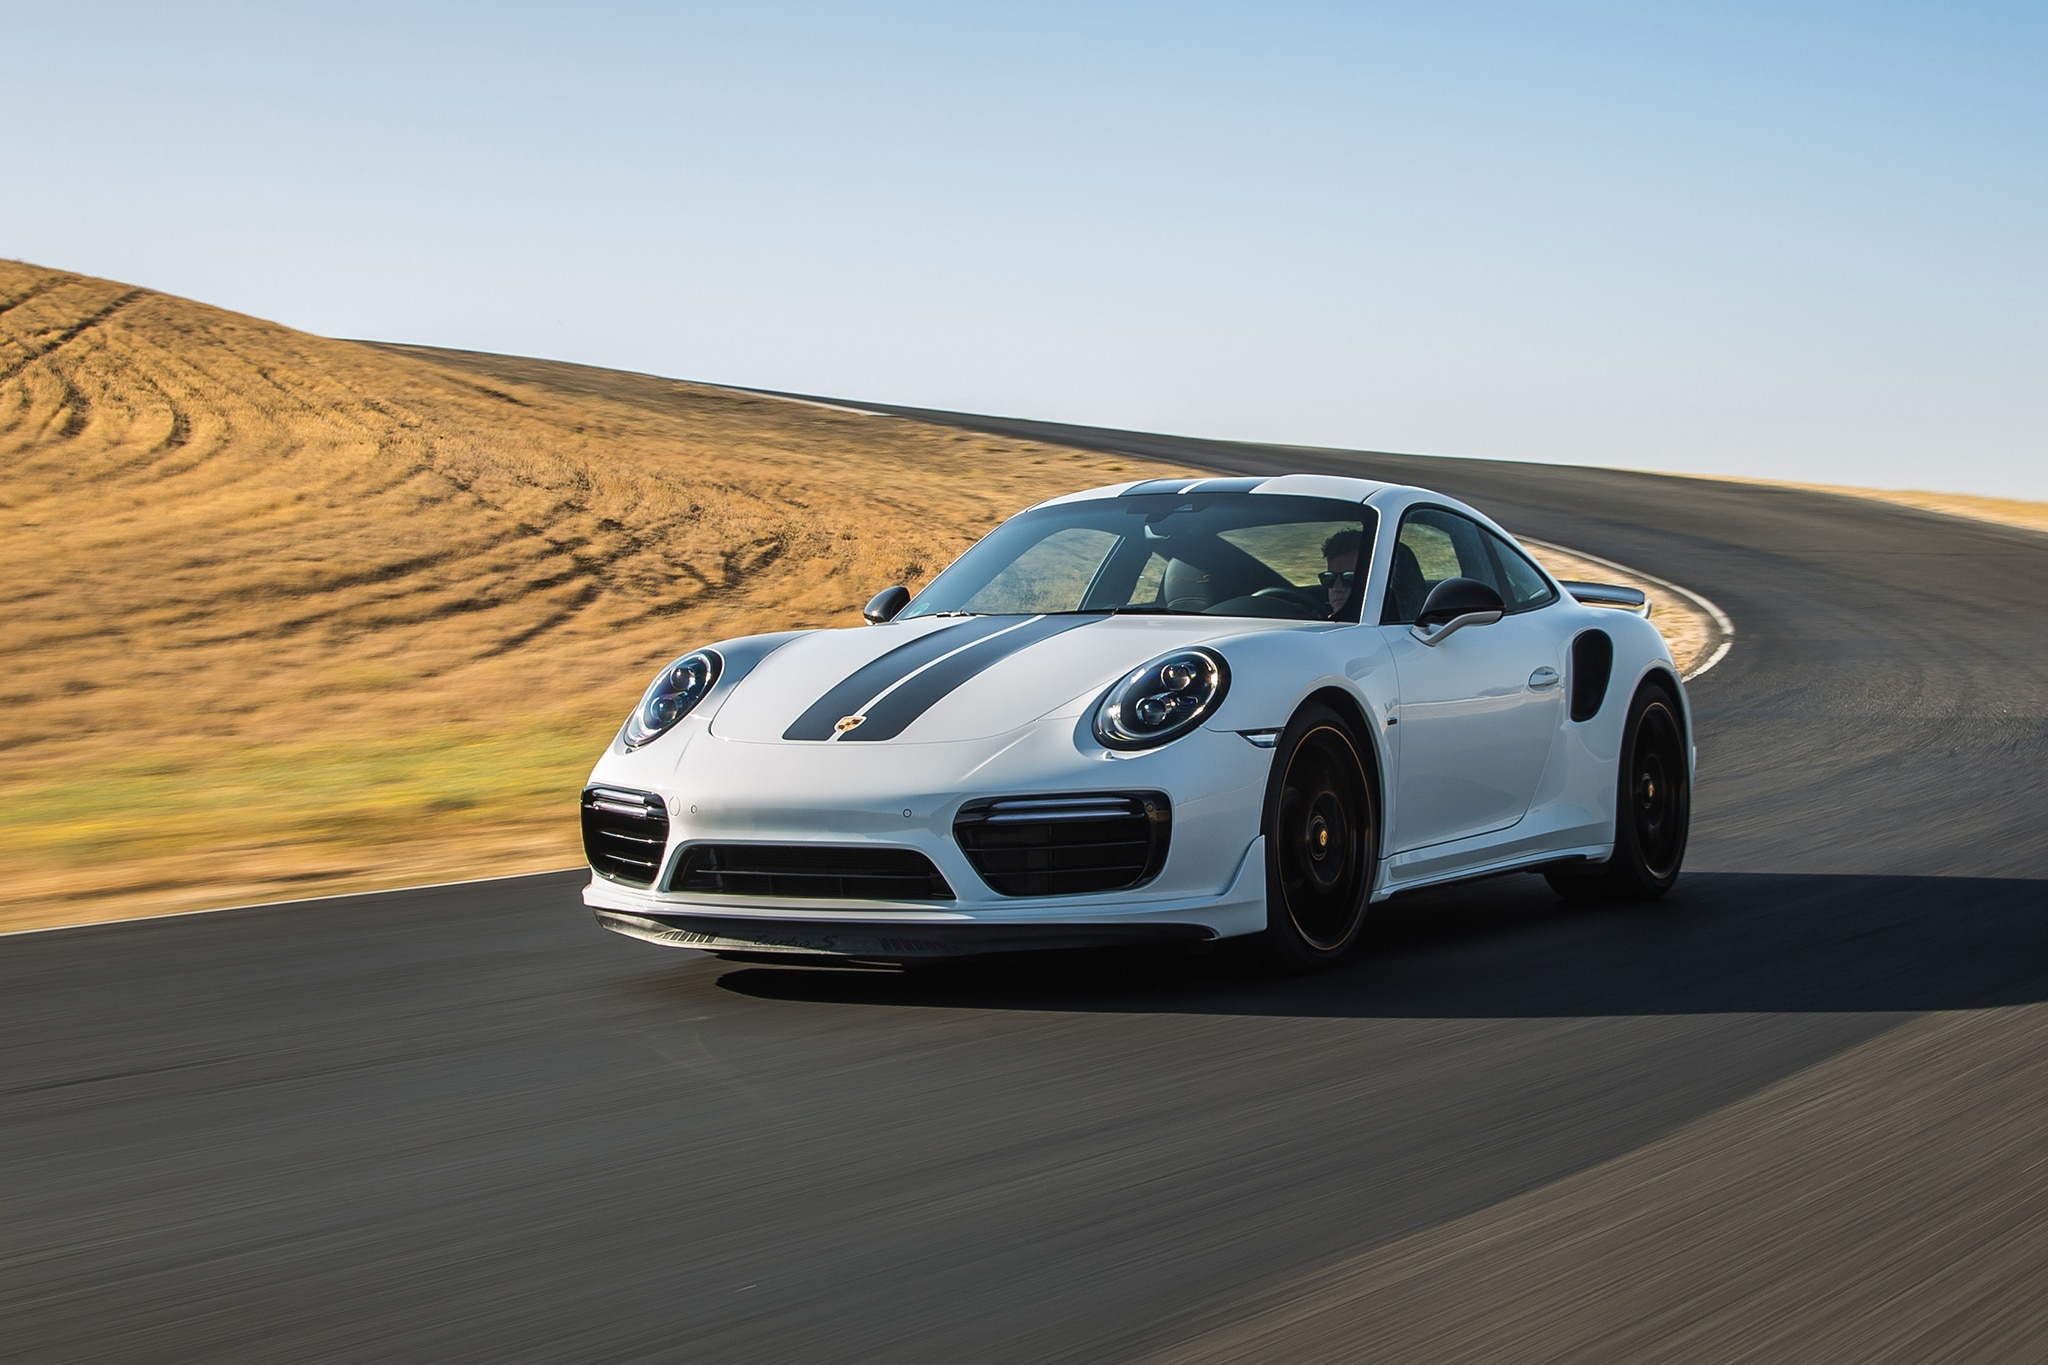 2018 Porsche 911 Turbo S Exclusive Front Three Quarter In Motion 08